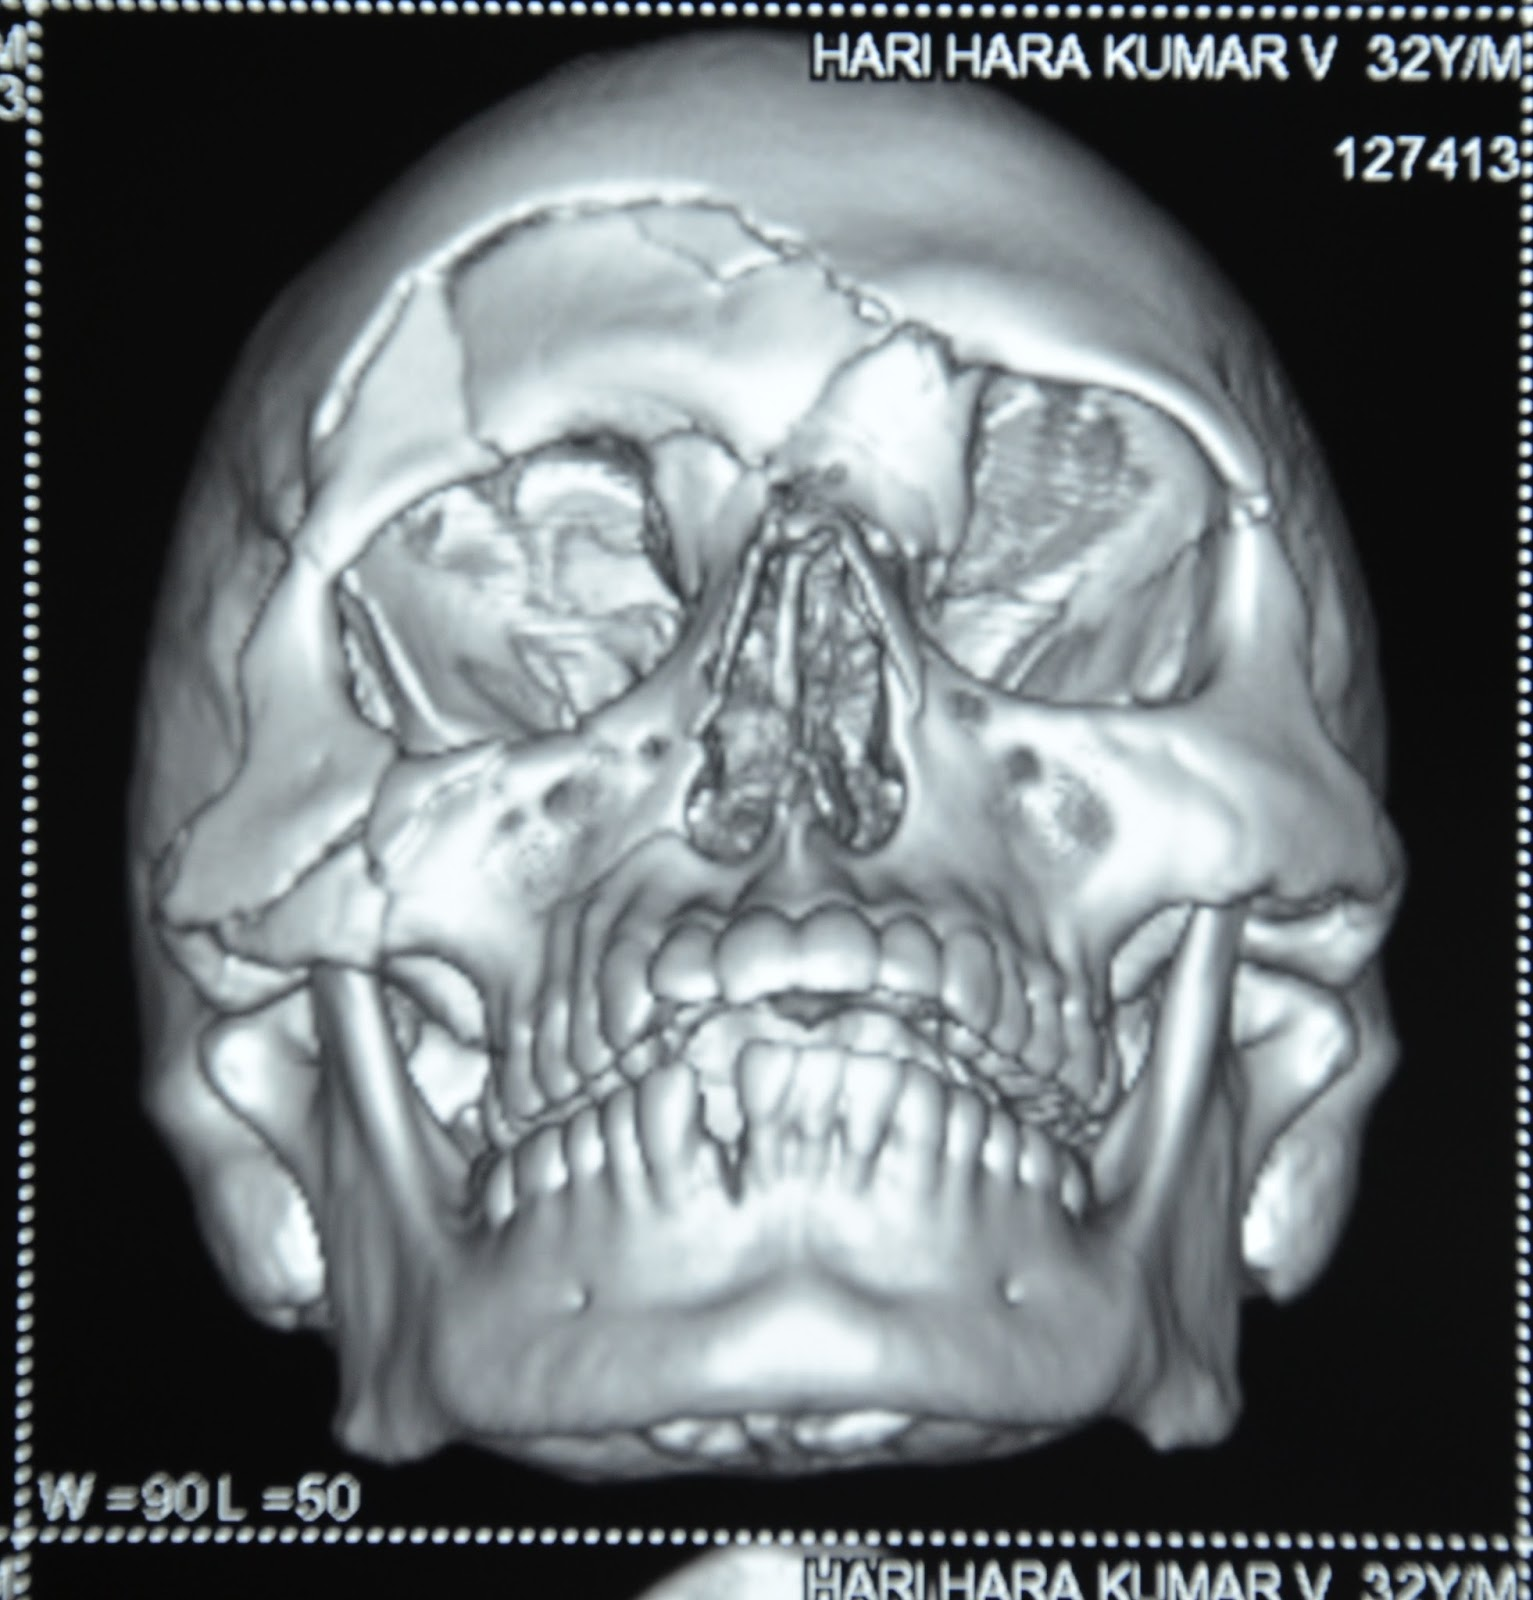 Multiple facial fractures